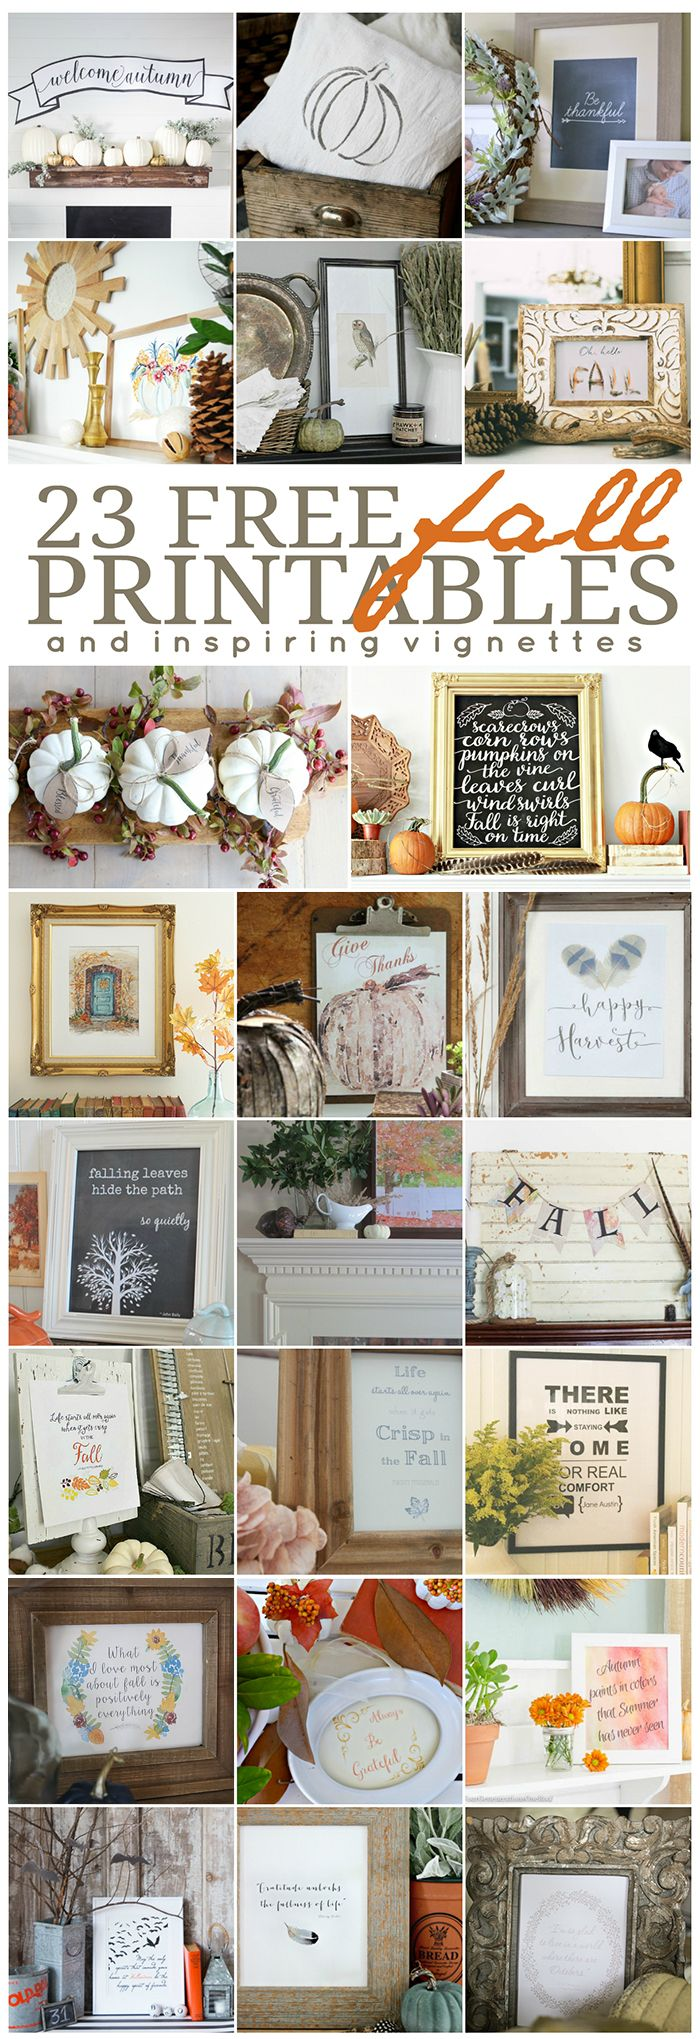 wallets and chains These Free Printables are the perfect way to add little Fall touches to your home this season by Ella Claire